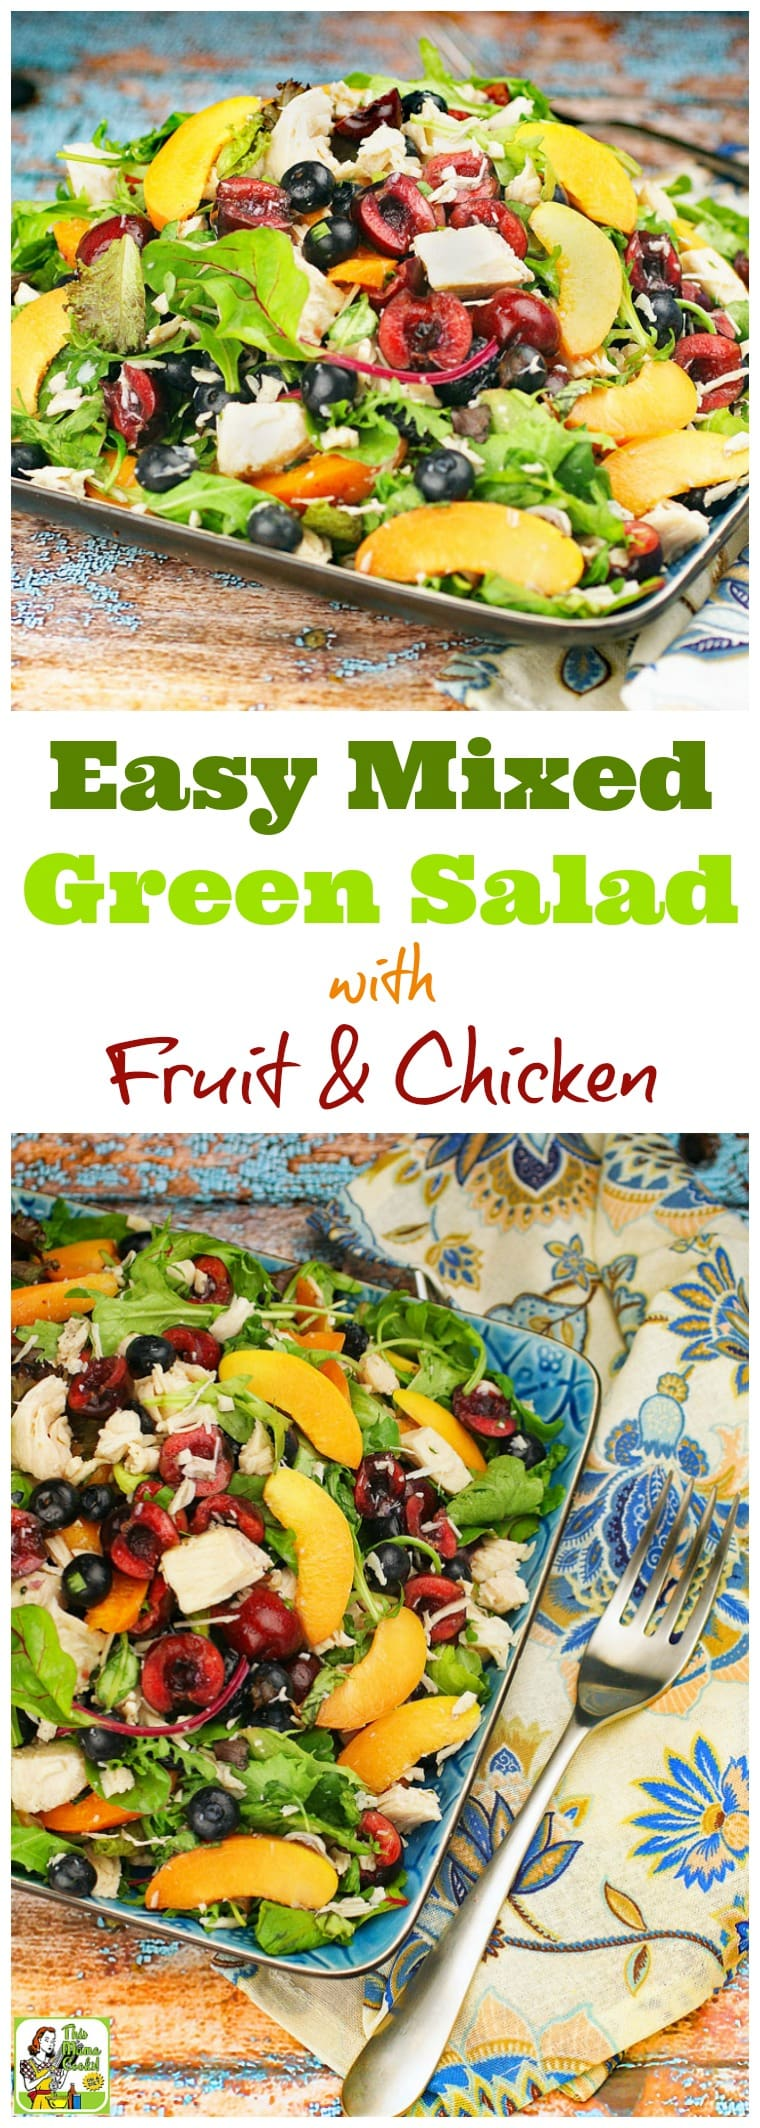 Too hot to cook? This Easy Mixed Green Salad with Fruit & Chicken recipe makes a satisfying weeknight meal. There's no cooking since it uses canned chicken breast. Click to get this healthy salad recipe that takes under 20 minutes to make, is easy to prepare, and uses seasonal fruits and vegetables, too.